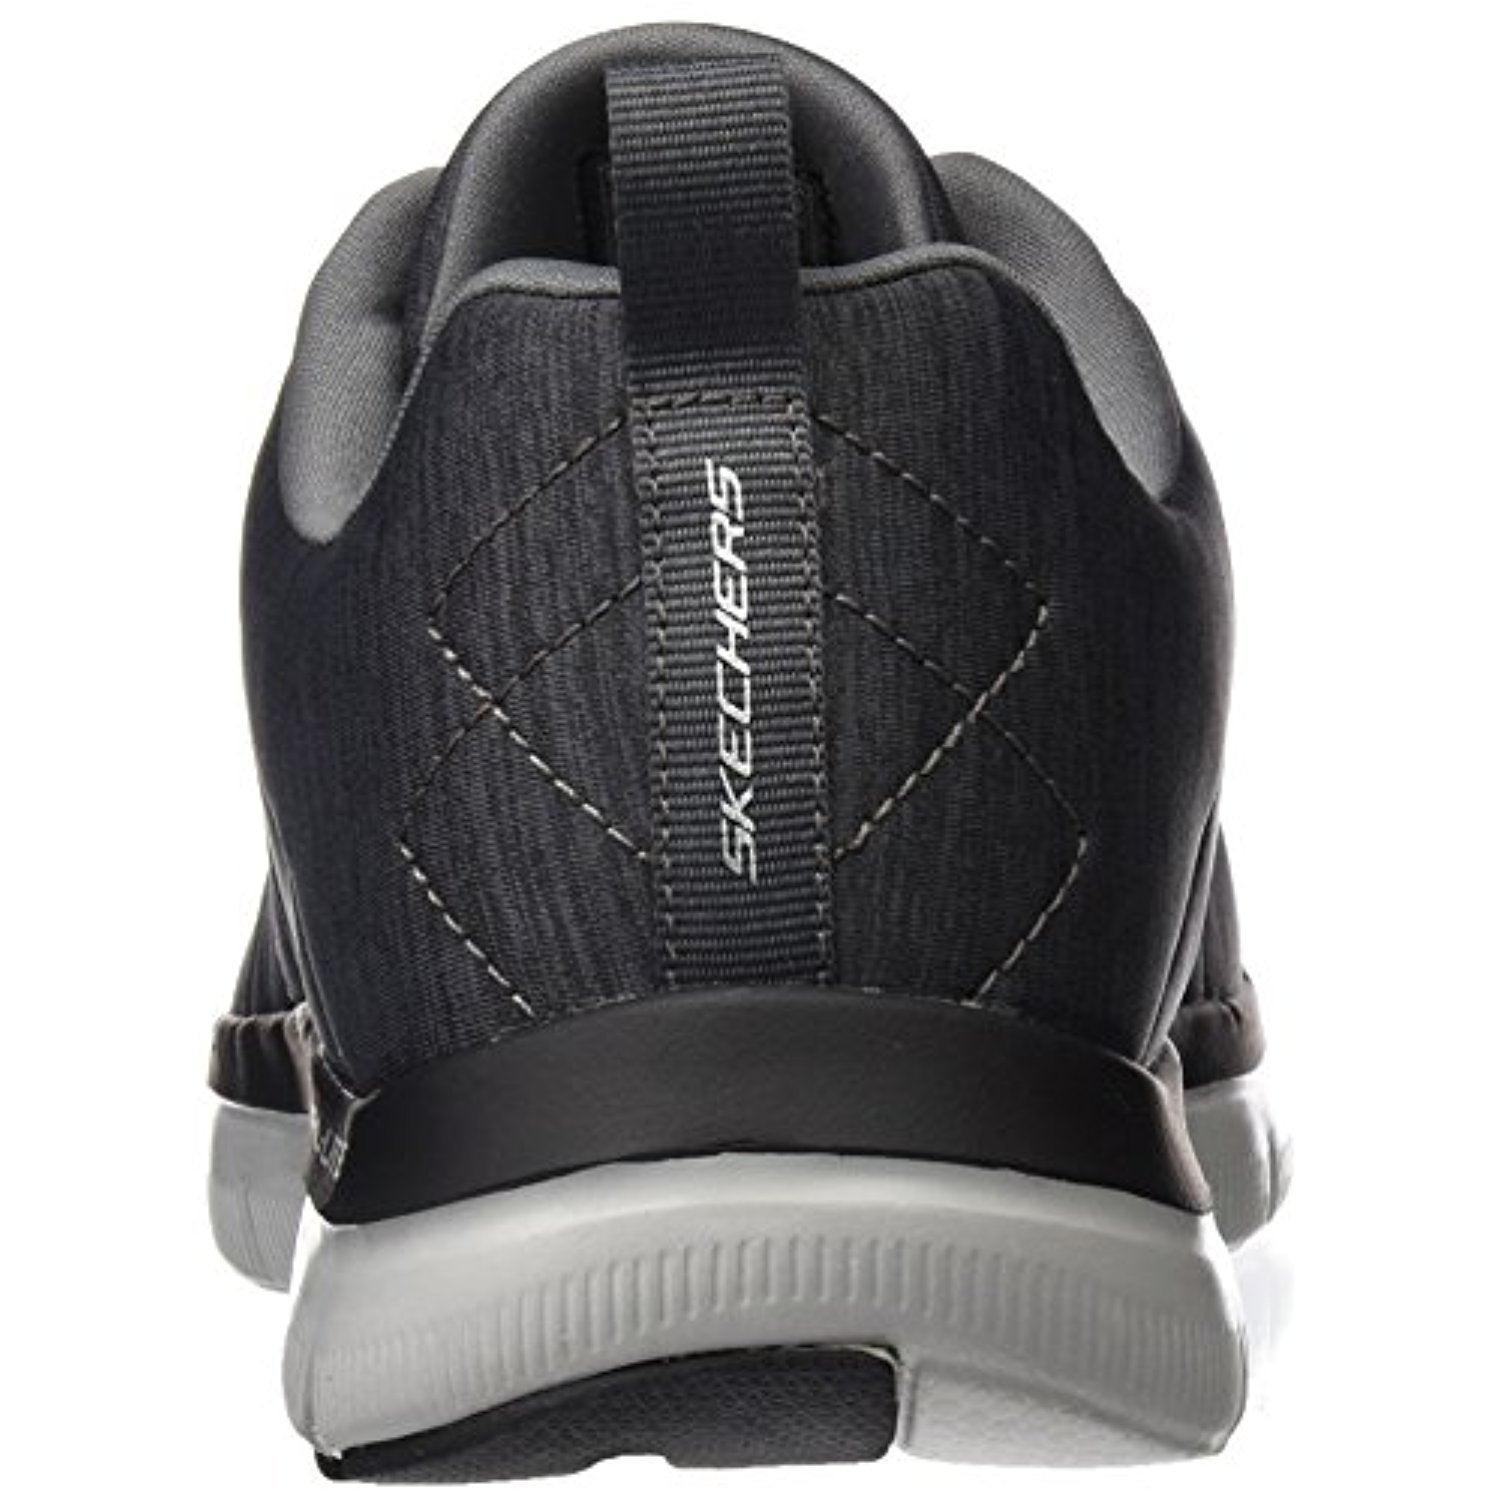 Resentimiento Servicio Inevitable  Skechers Men's Flex Advantage 2.0 Chillston Trainer,Charcoal,US - Overstock  - 18277512